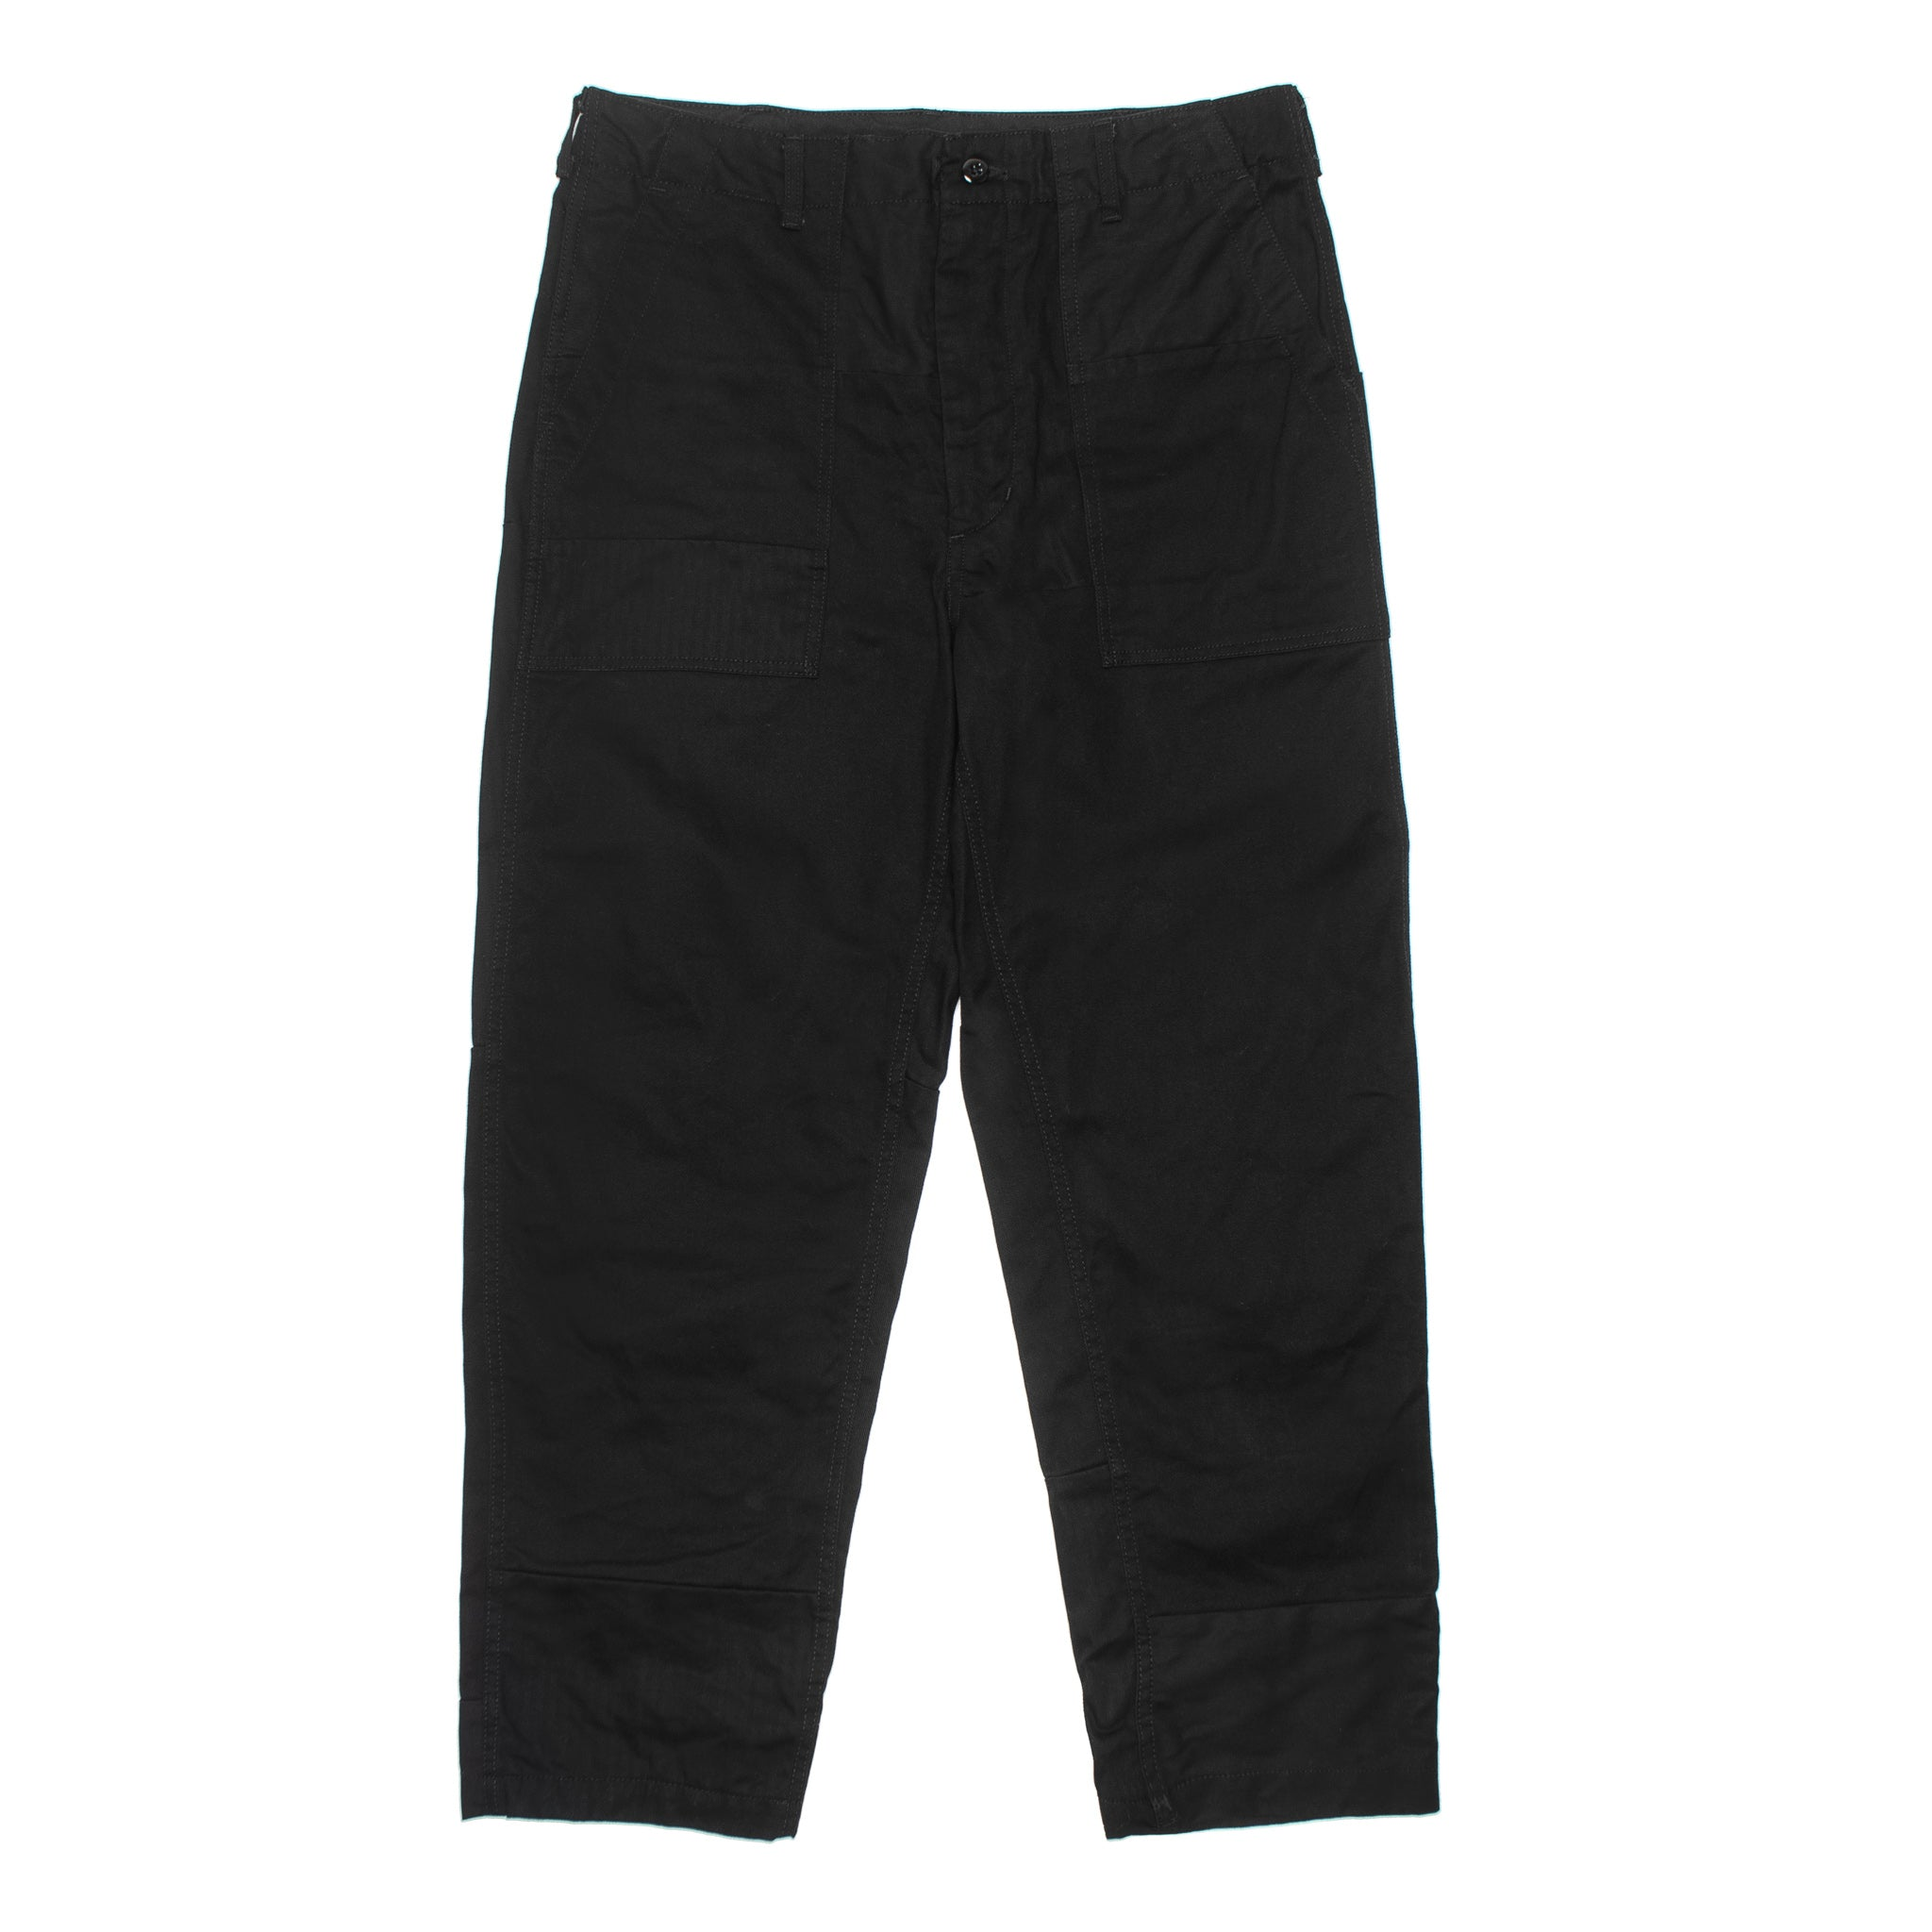 Fatigue Pant Heavy Twill 19FF004 Black